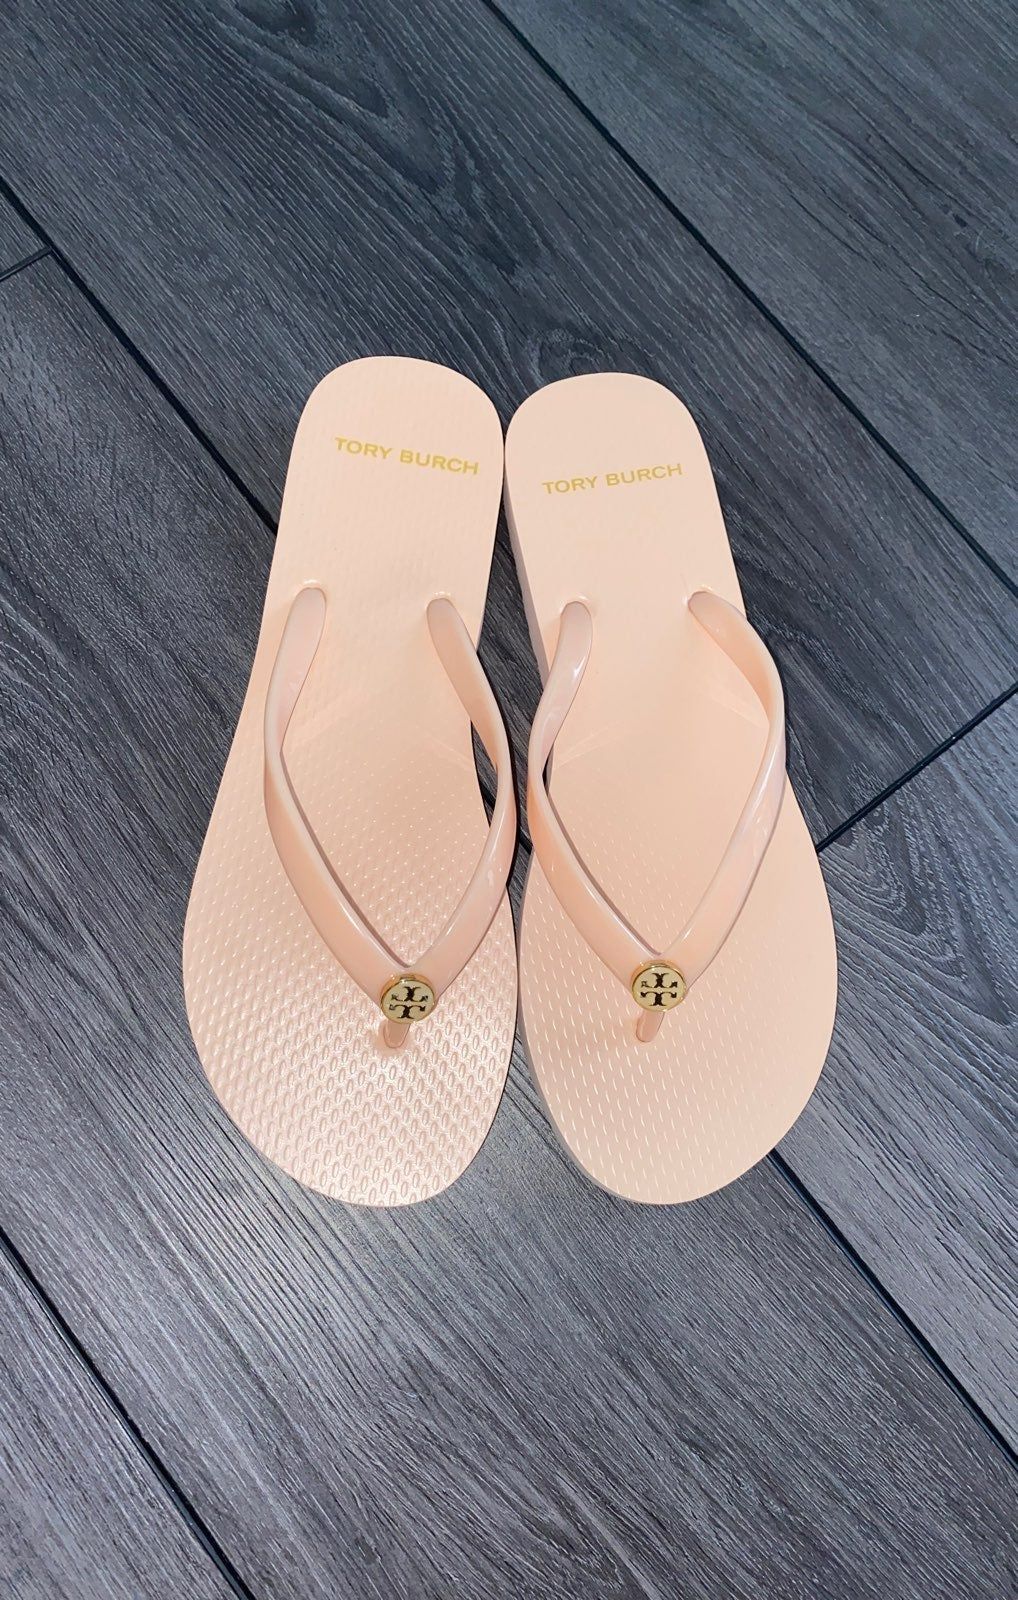 Tory Burch Solid Thin Flip Flop Sandals